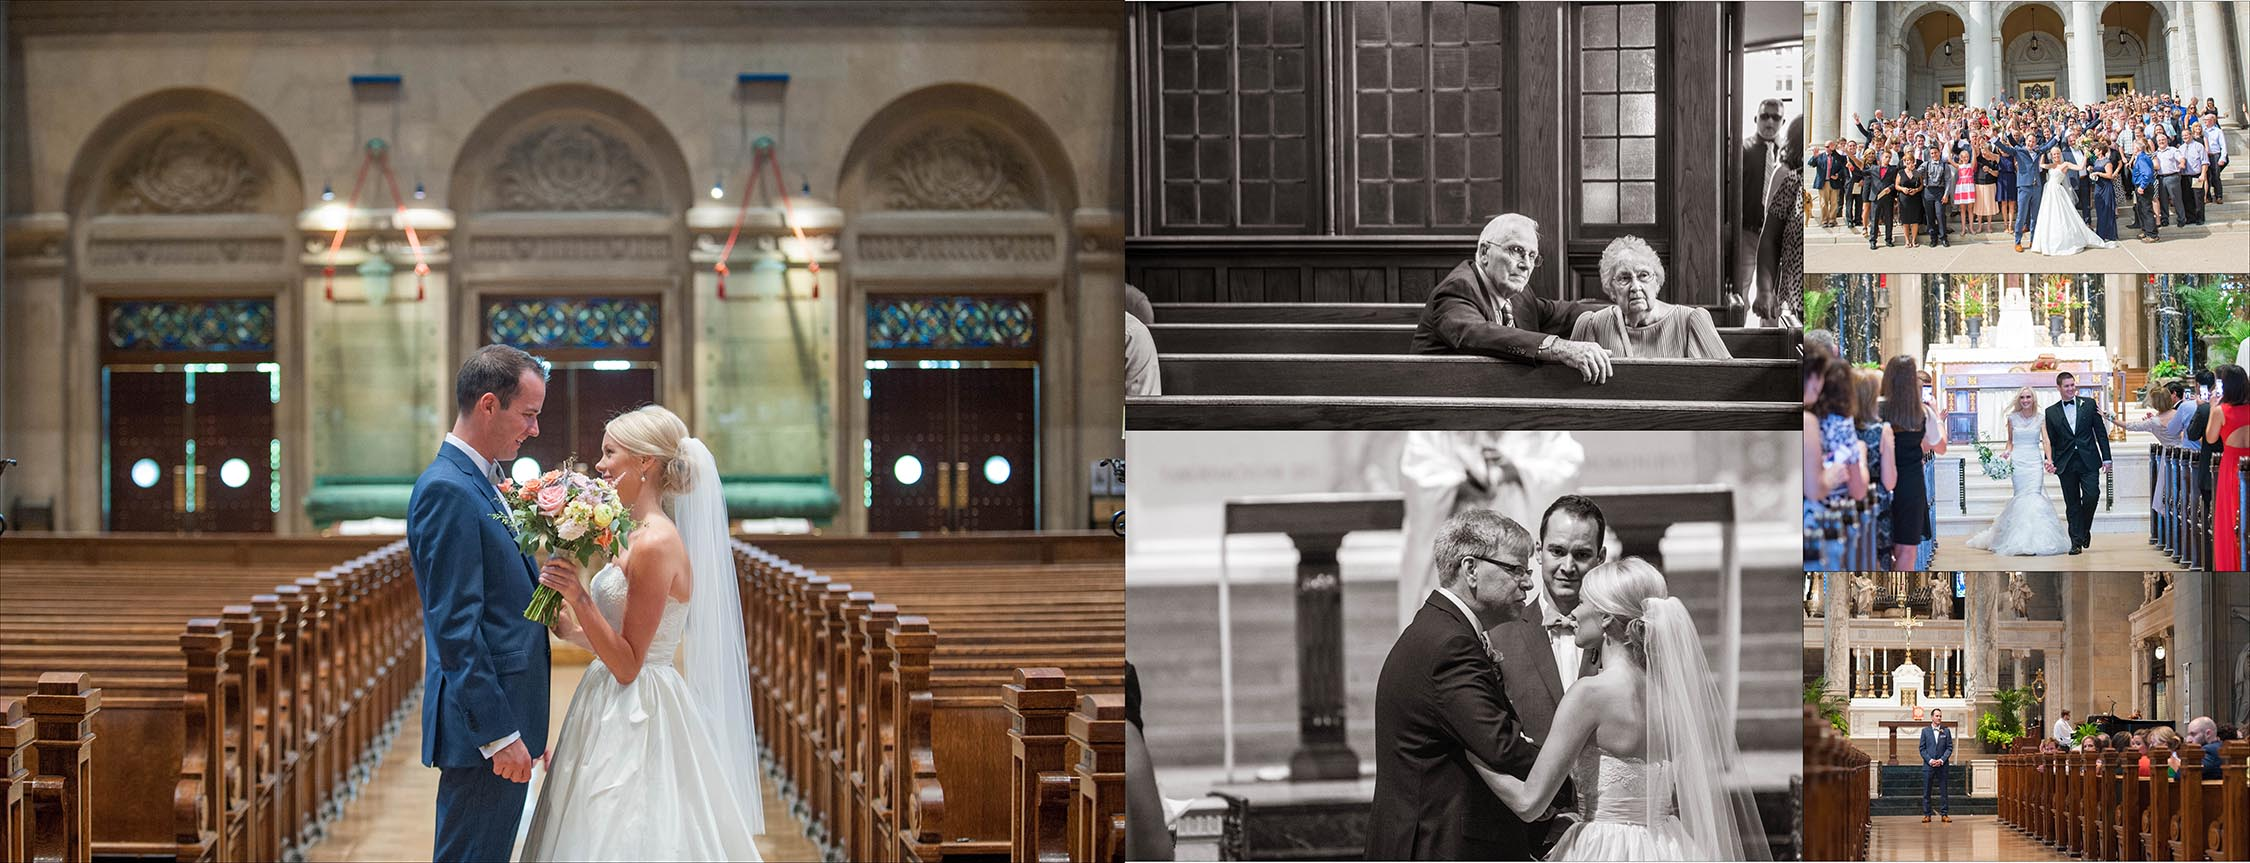 Wedding Photographers St. Paul MN